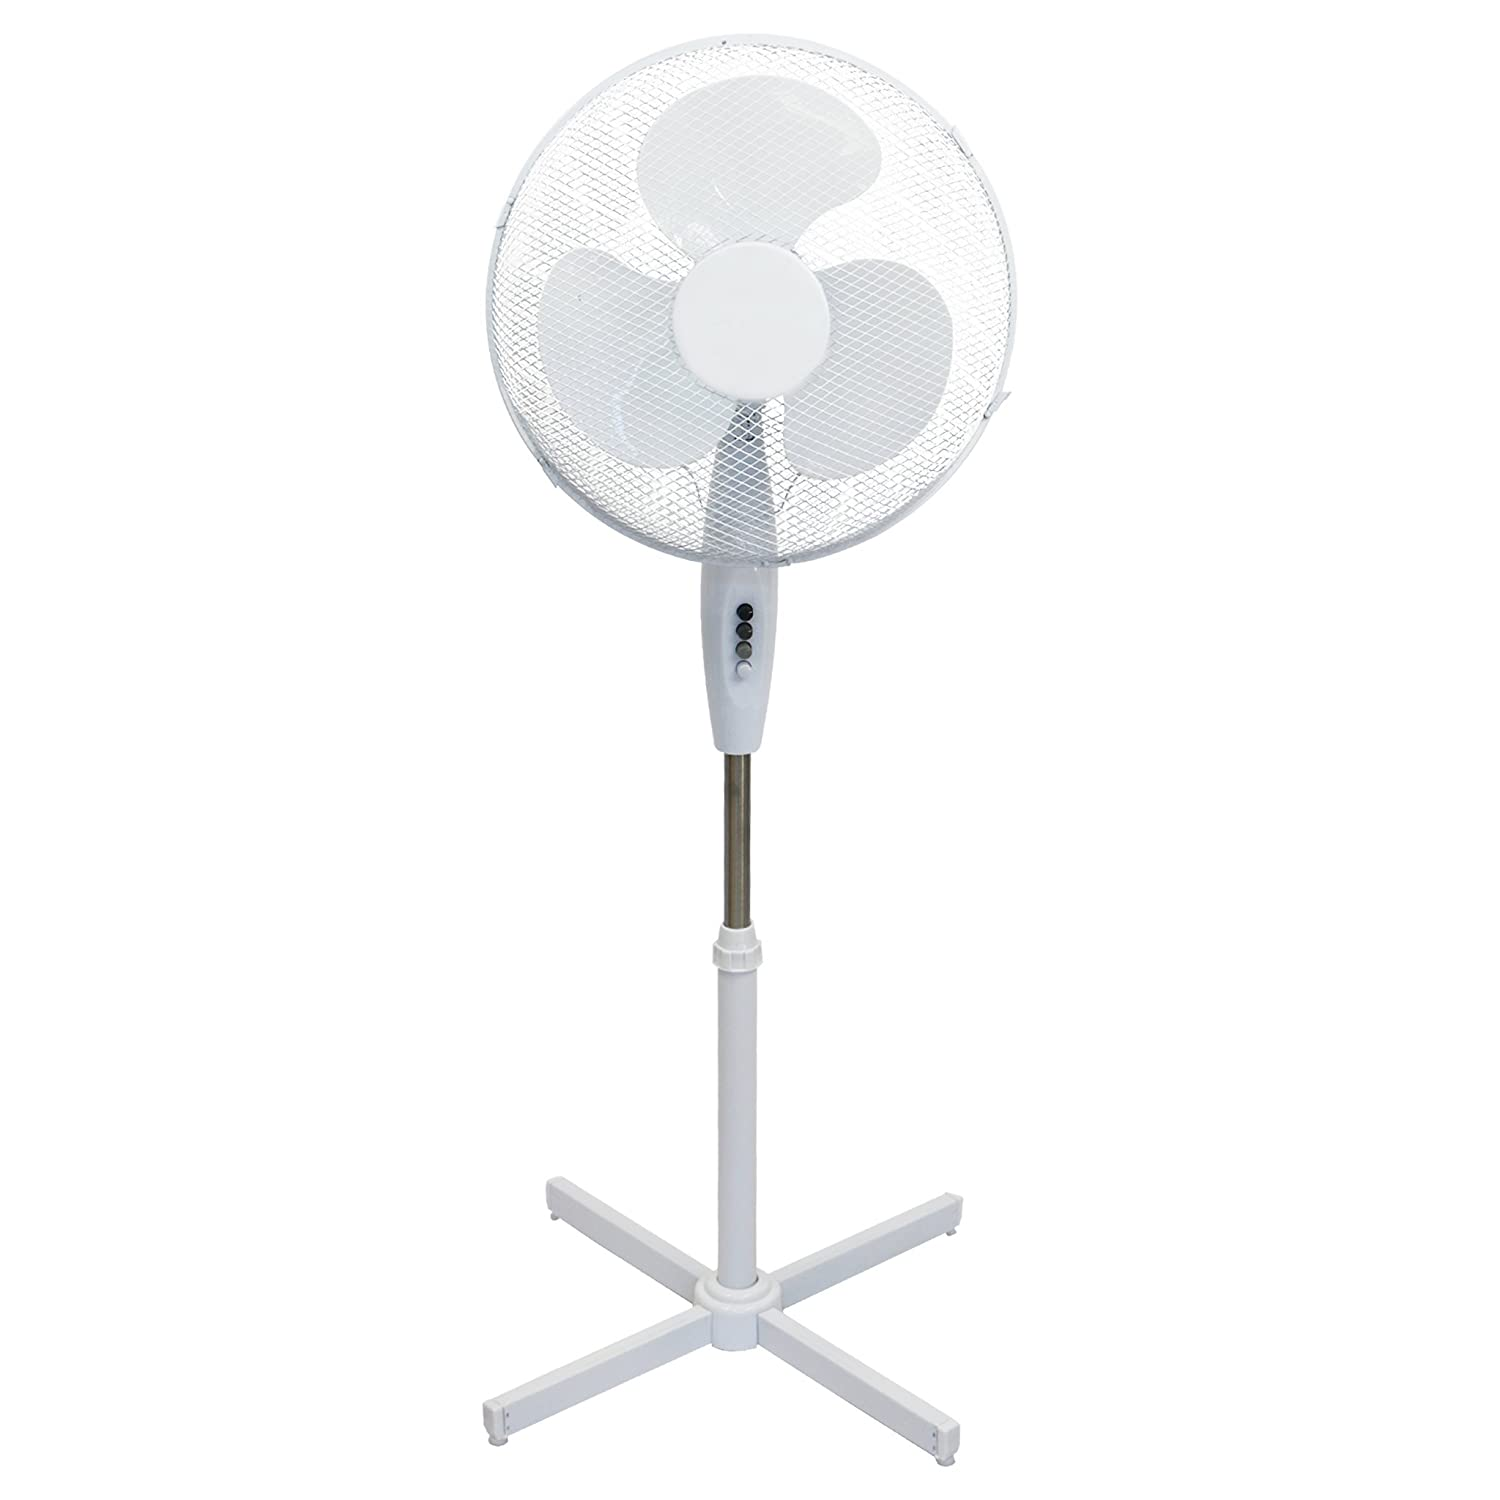 Oypla Electrical 16 Oscillating Pedestal Electric Cooling Fan G16PF